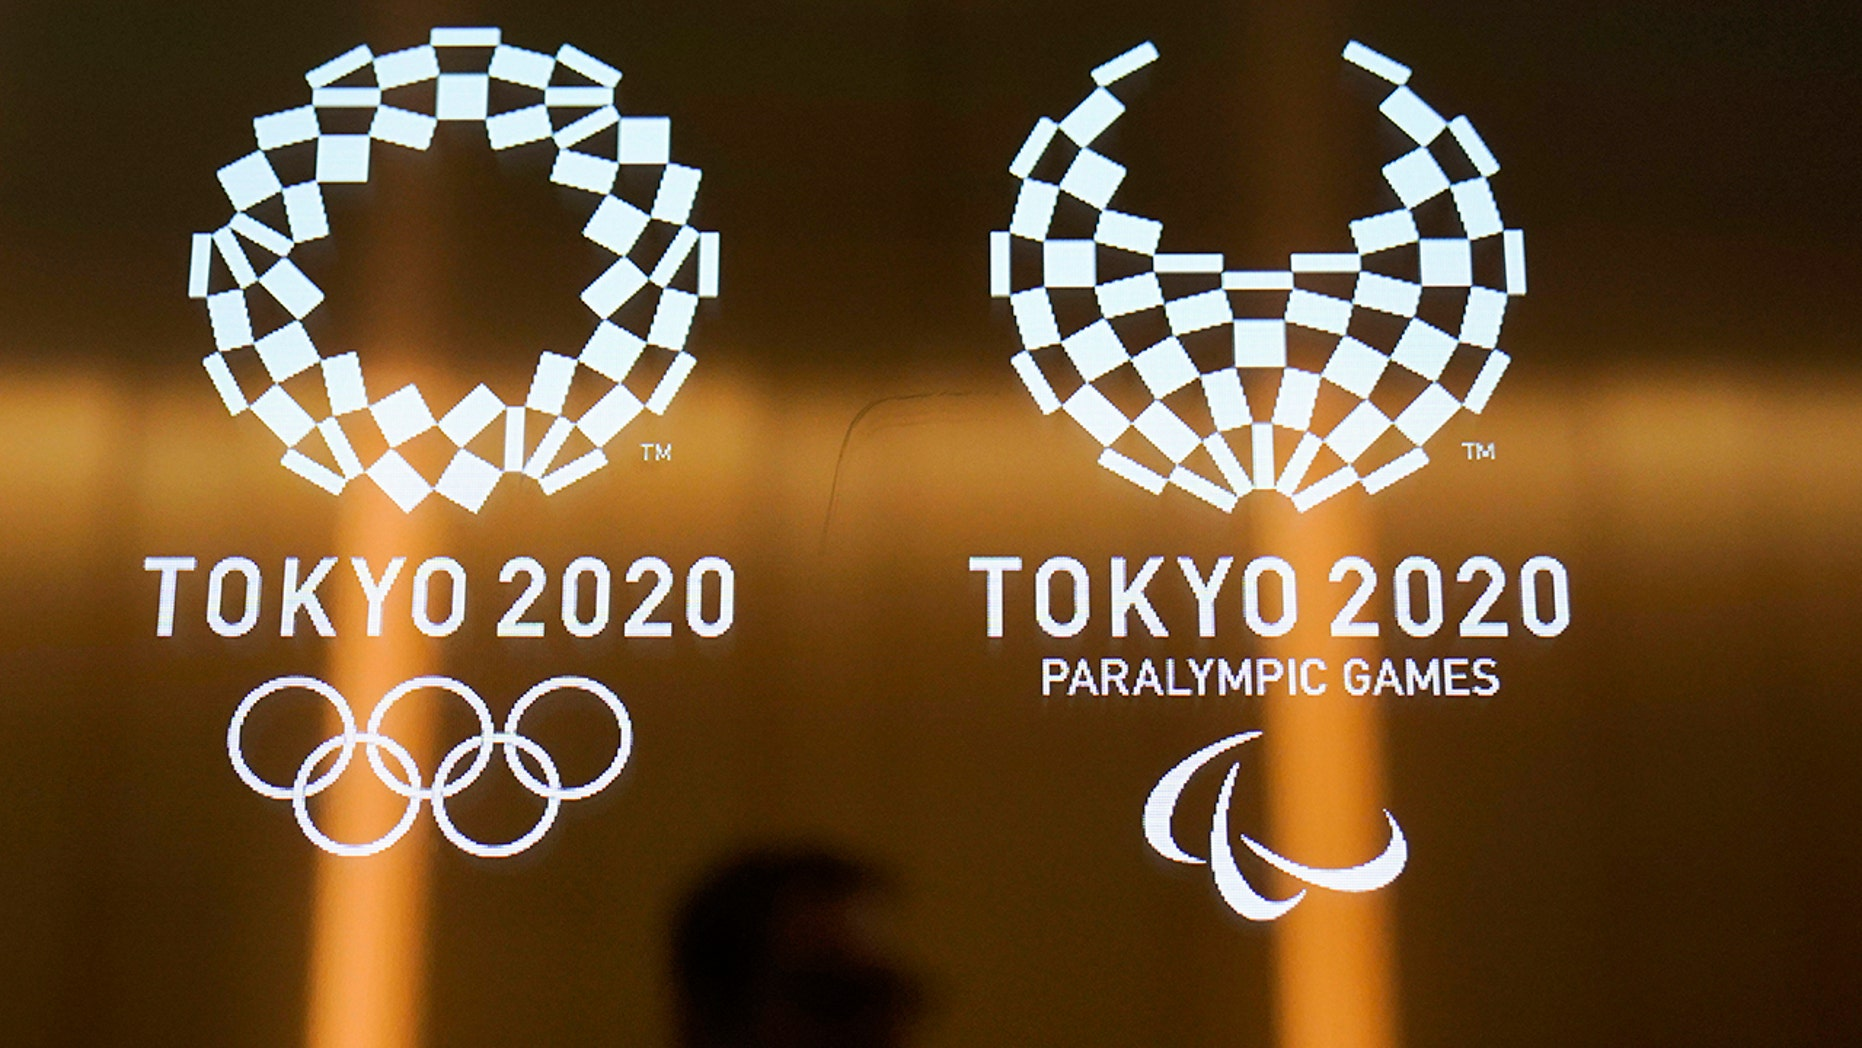 Westlake Legal Group Tokyo-Paralympics Same as Olympics: Tokyo Paralympic ticket demand tops supply fox-news/sports/olympics fnc/sports fnc Associated Press article 33438312-4a87-5509-bfa3-f2b5f71047fe